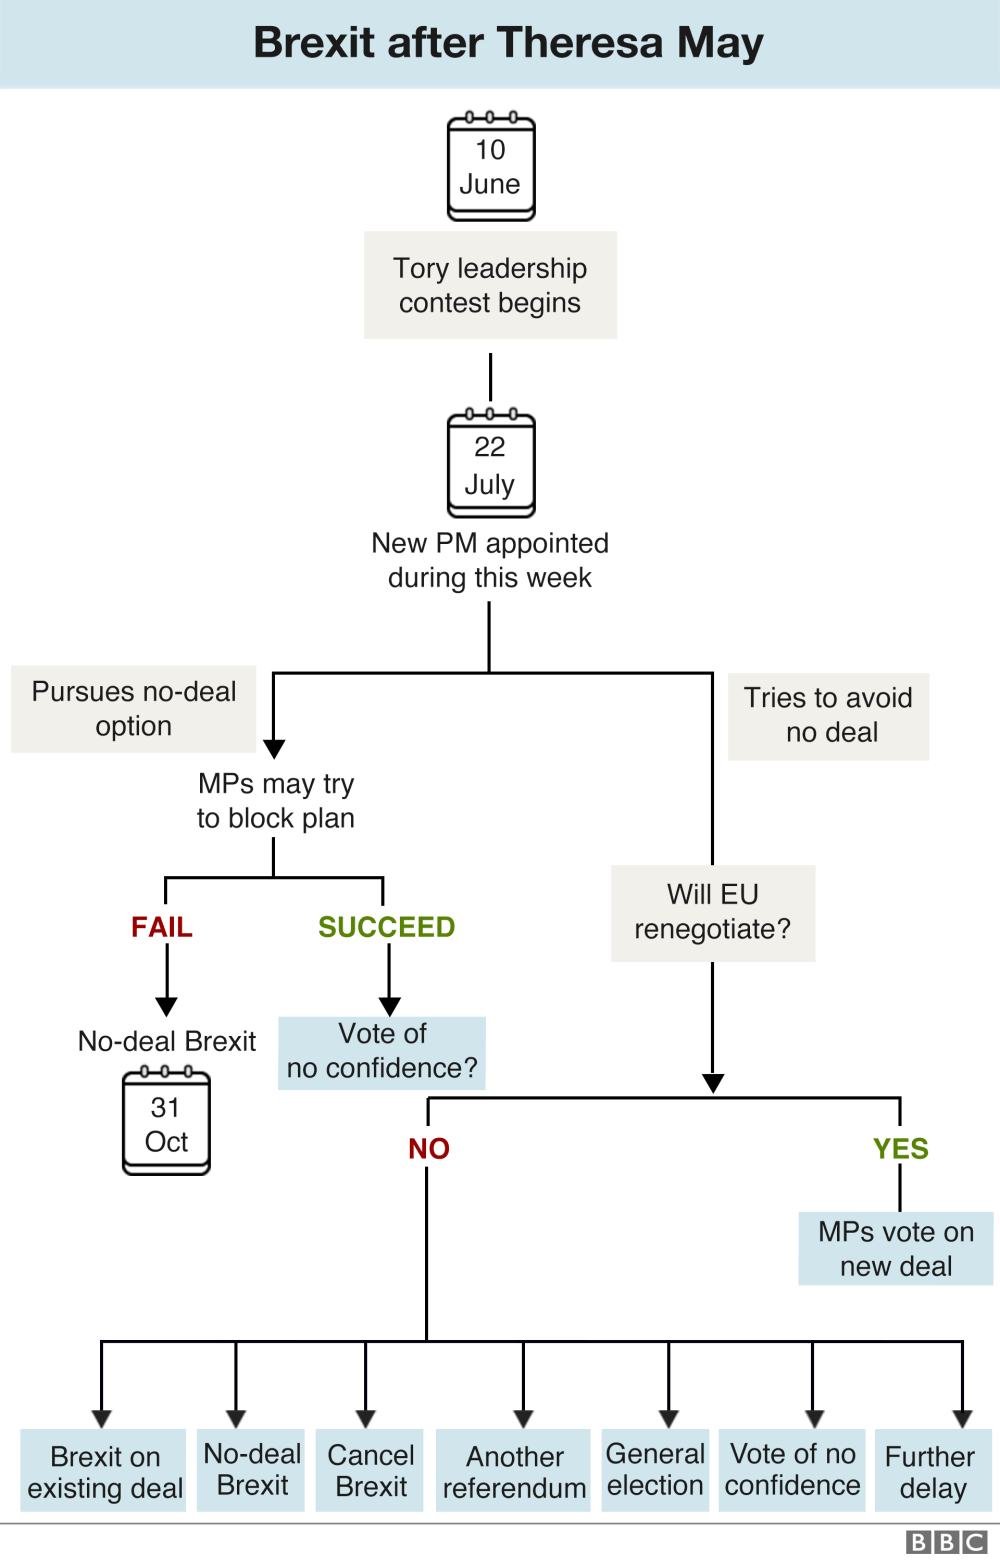 medium resolution of updated flowchart showing how brexit might happen once a new tory leader is chosen